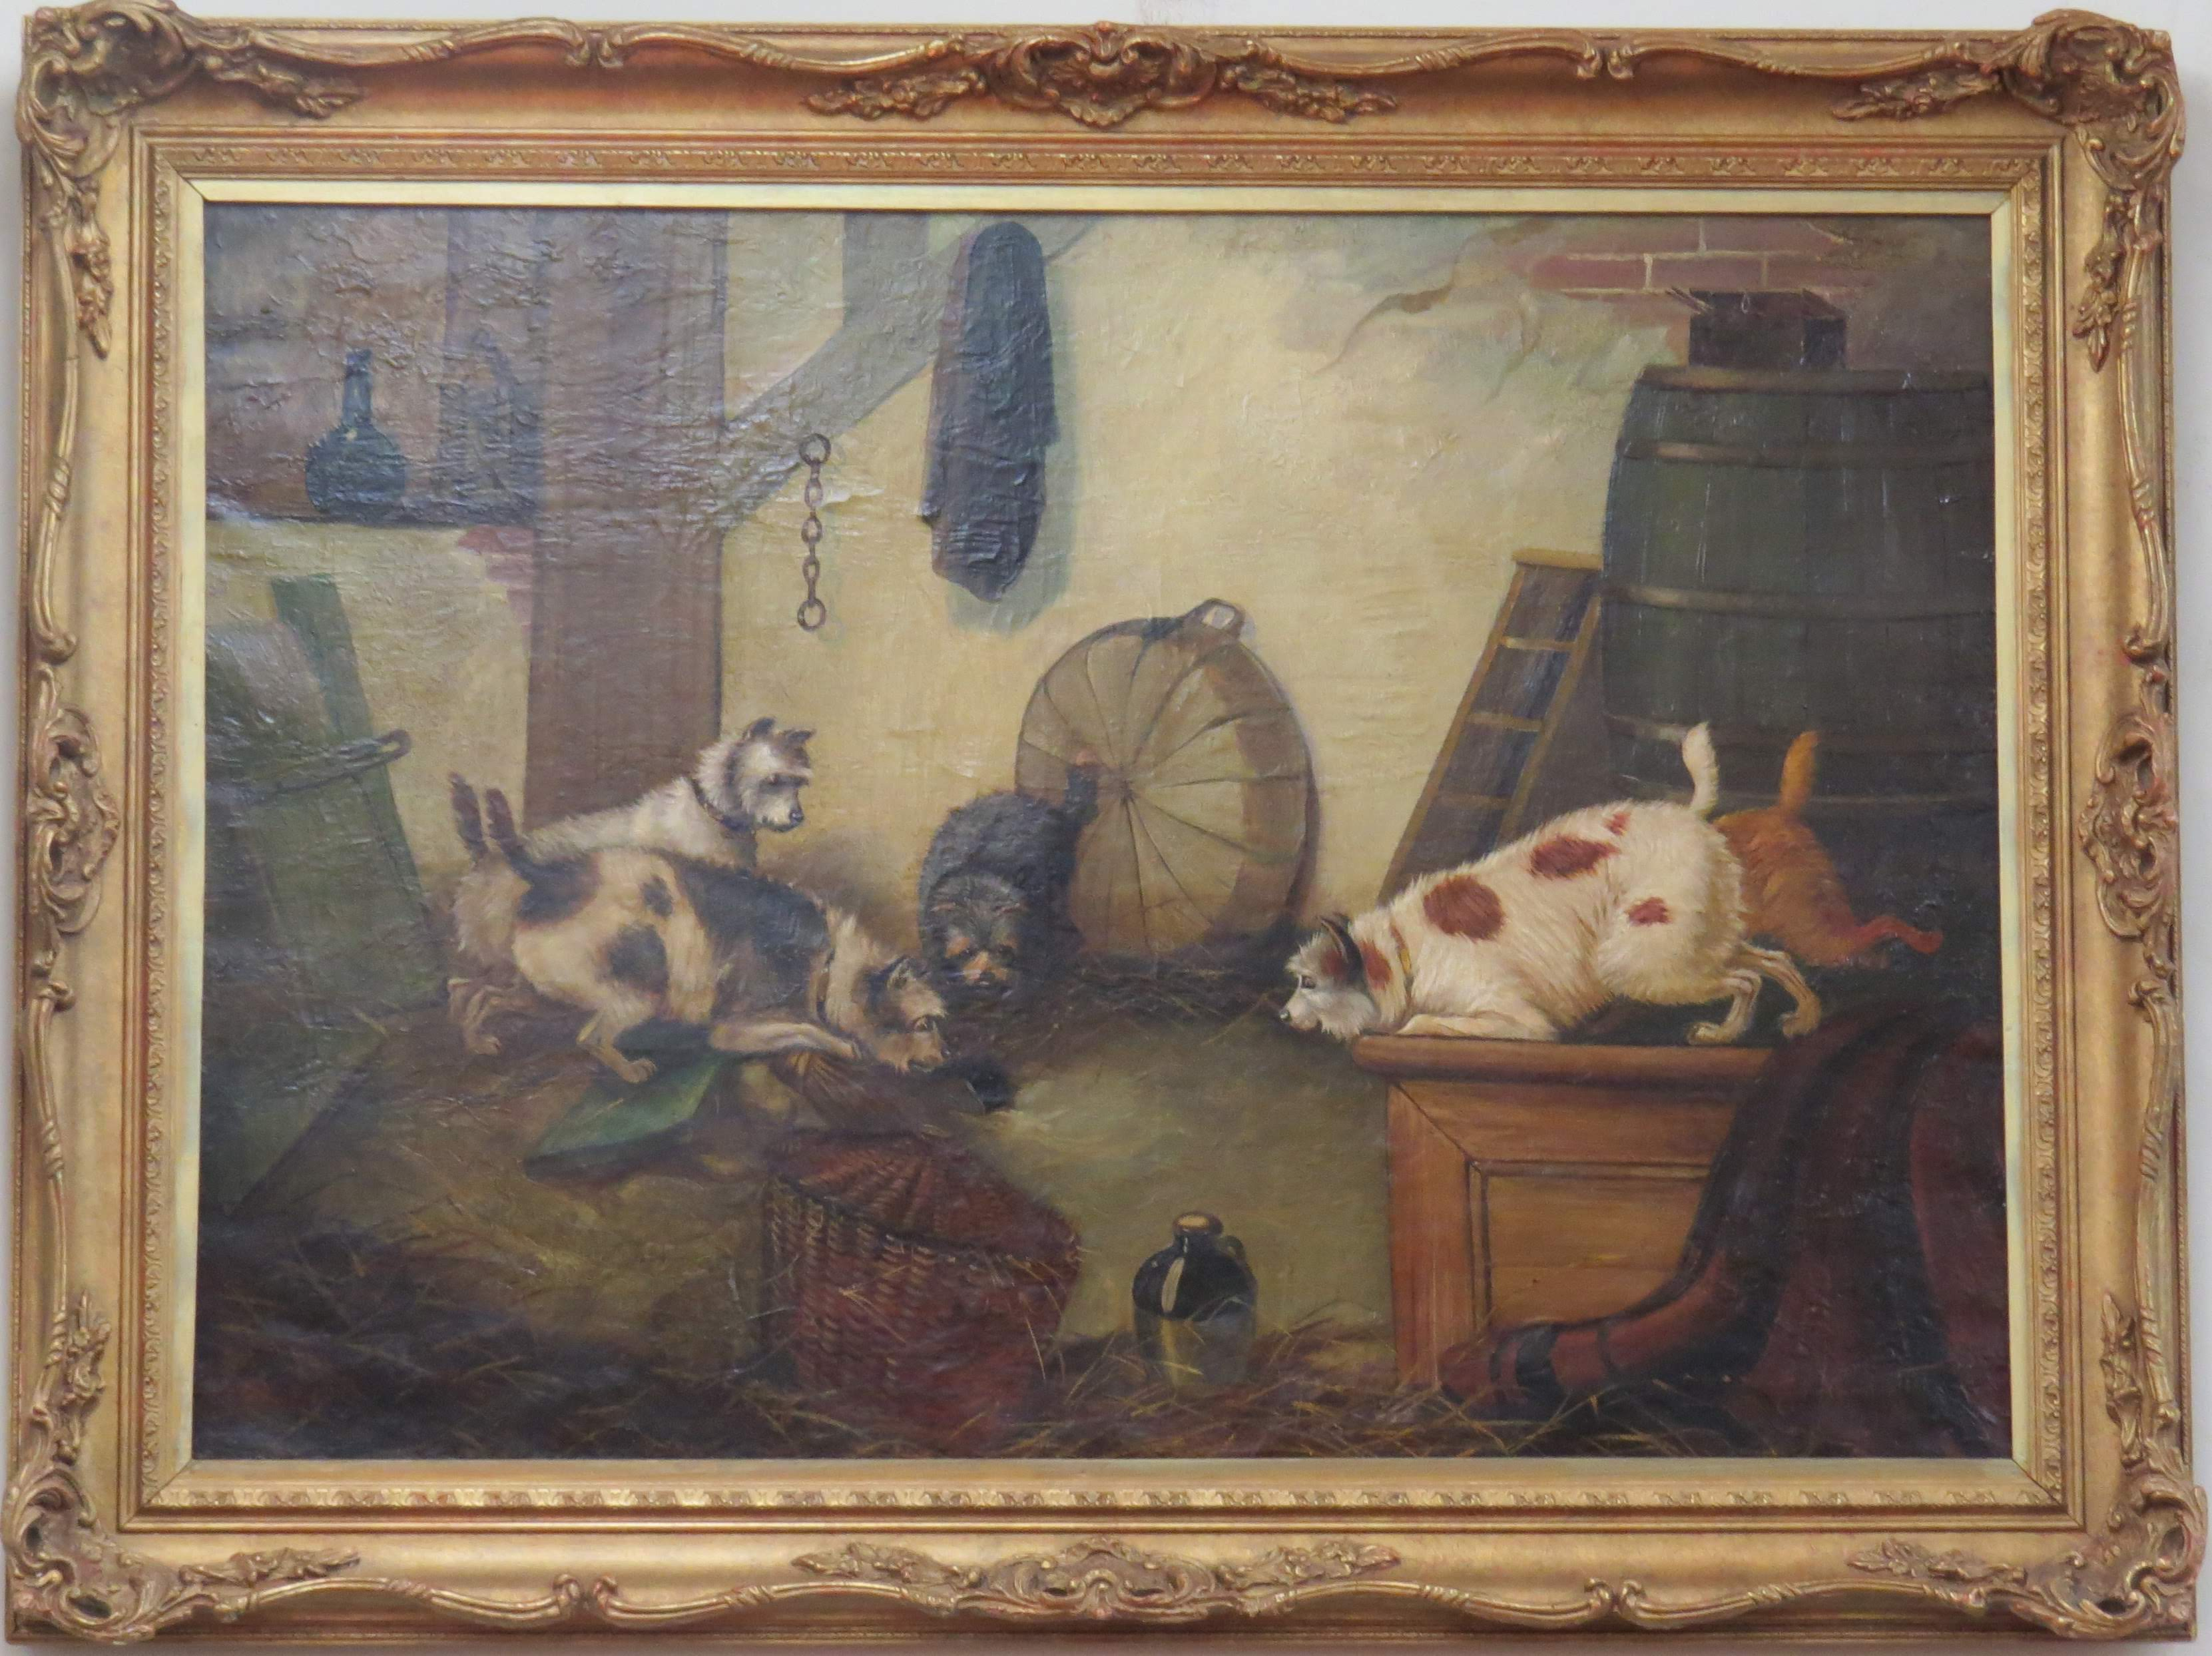 Oil on Canvas of Terriers by Edward Armfield  (SOLD)